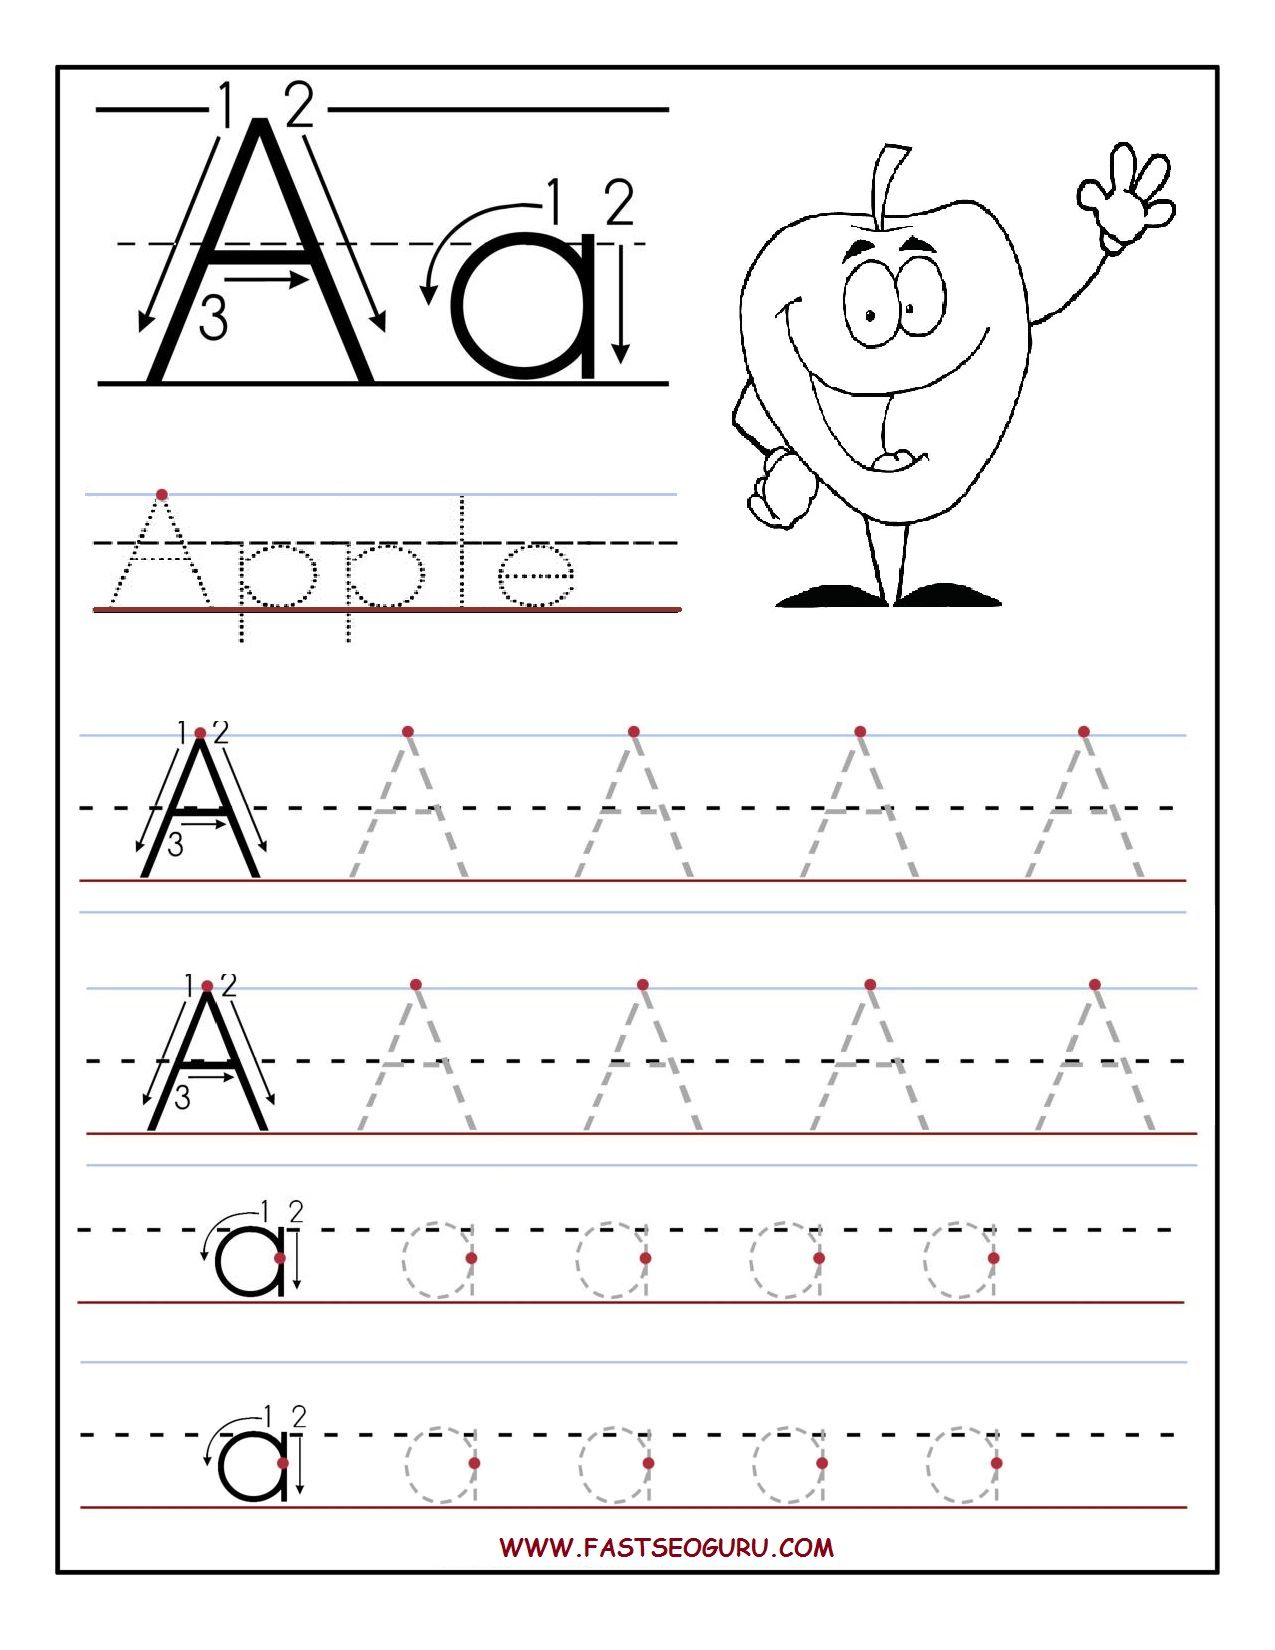 Worksheets Free Preschool Worksheets Alphabet Tracing letter tracing a z free printable worksheets worksheetfun pinterest printable